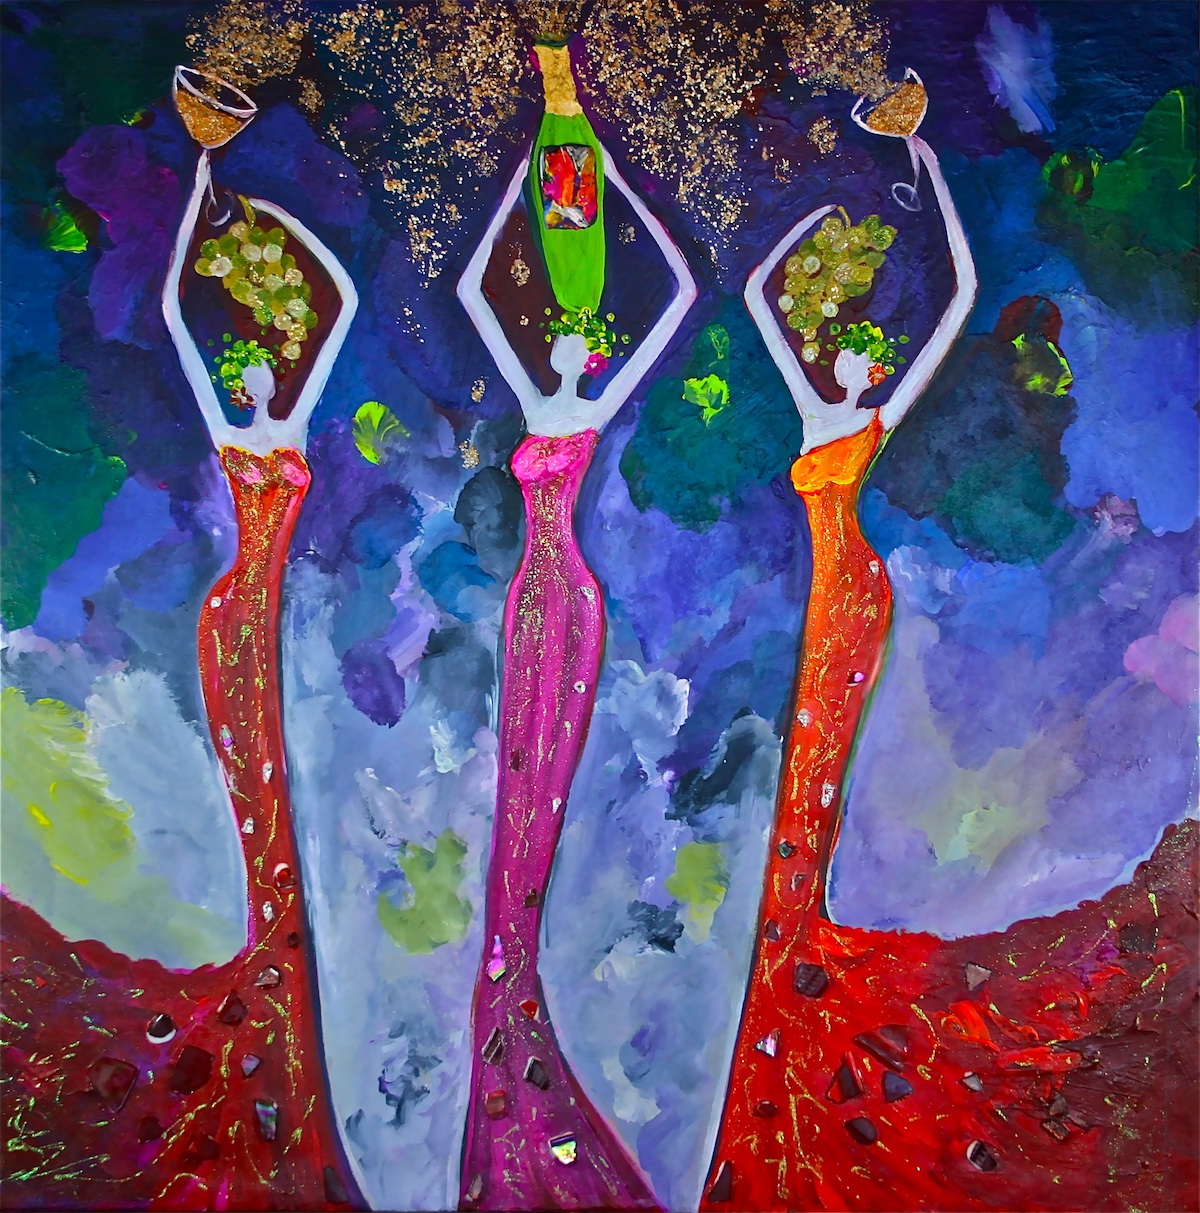 Muse - Goddess of Wine Painting by Stephanie Schlatter